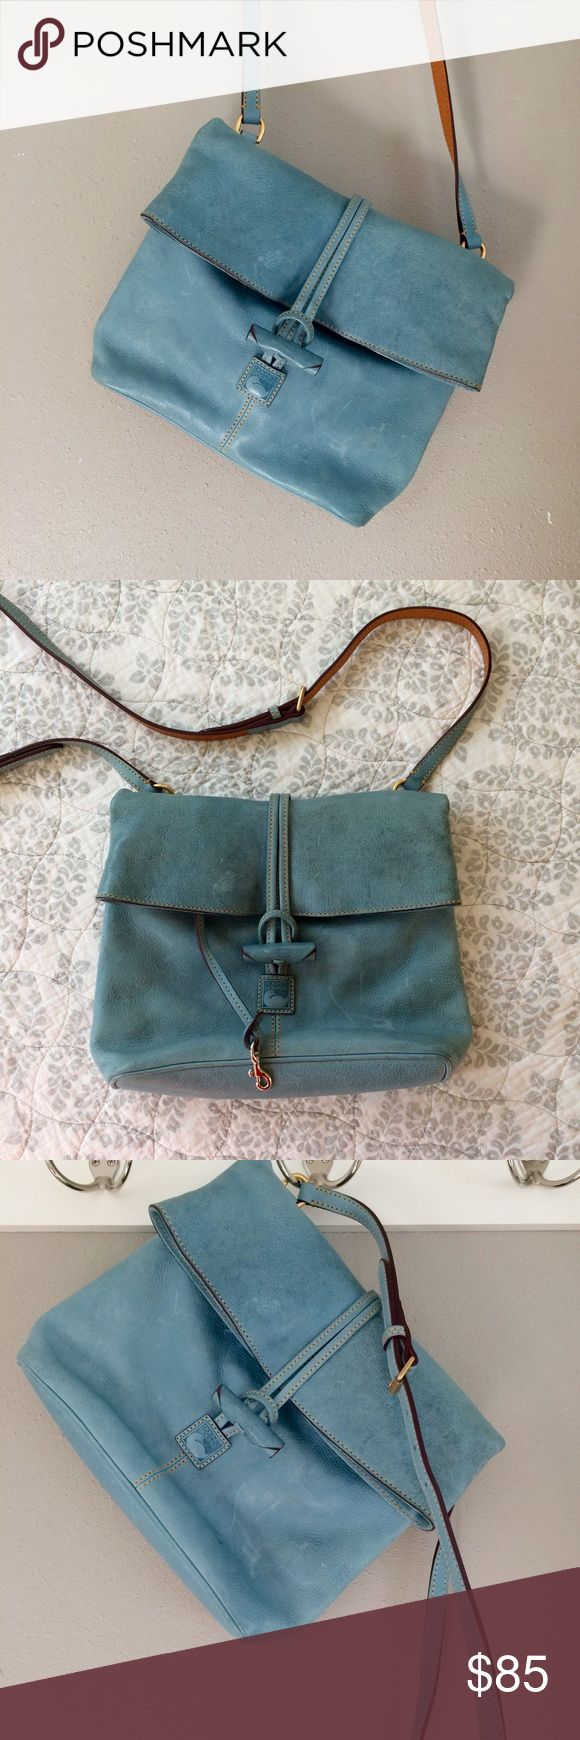 OS Donney & Bourke Cross Body Bag OS Donney & Bourke Cross Body Bag. Sky blue with emerald green and red lining. Fold over Top with plenty of pockets inside and out. My favorite size for travel and everyday. Very good condition, some very minor scuffs in leather. Bundle for additional discounts and seller offers. Dooney & Bourke Bags Crossbody Bags